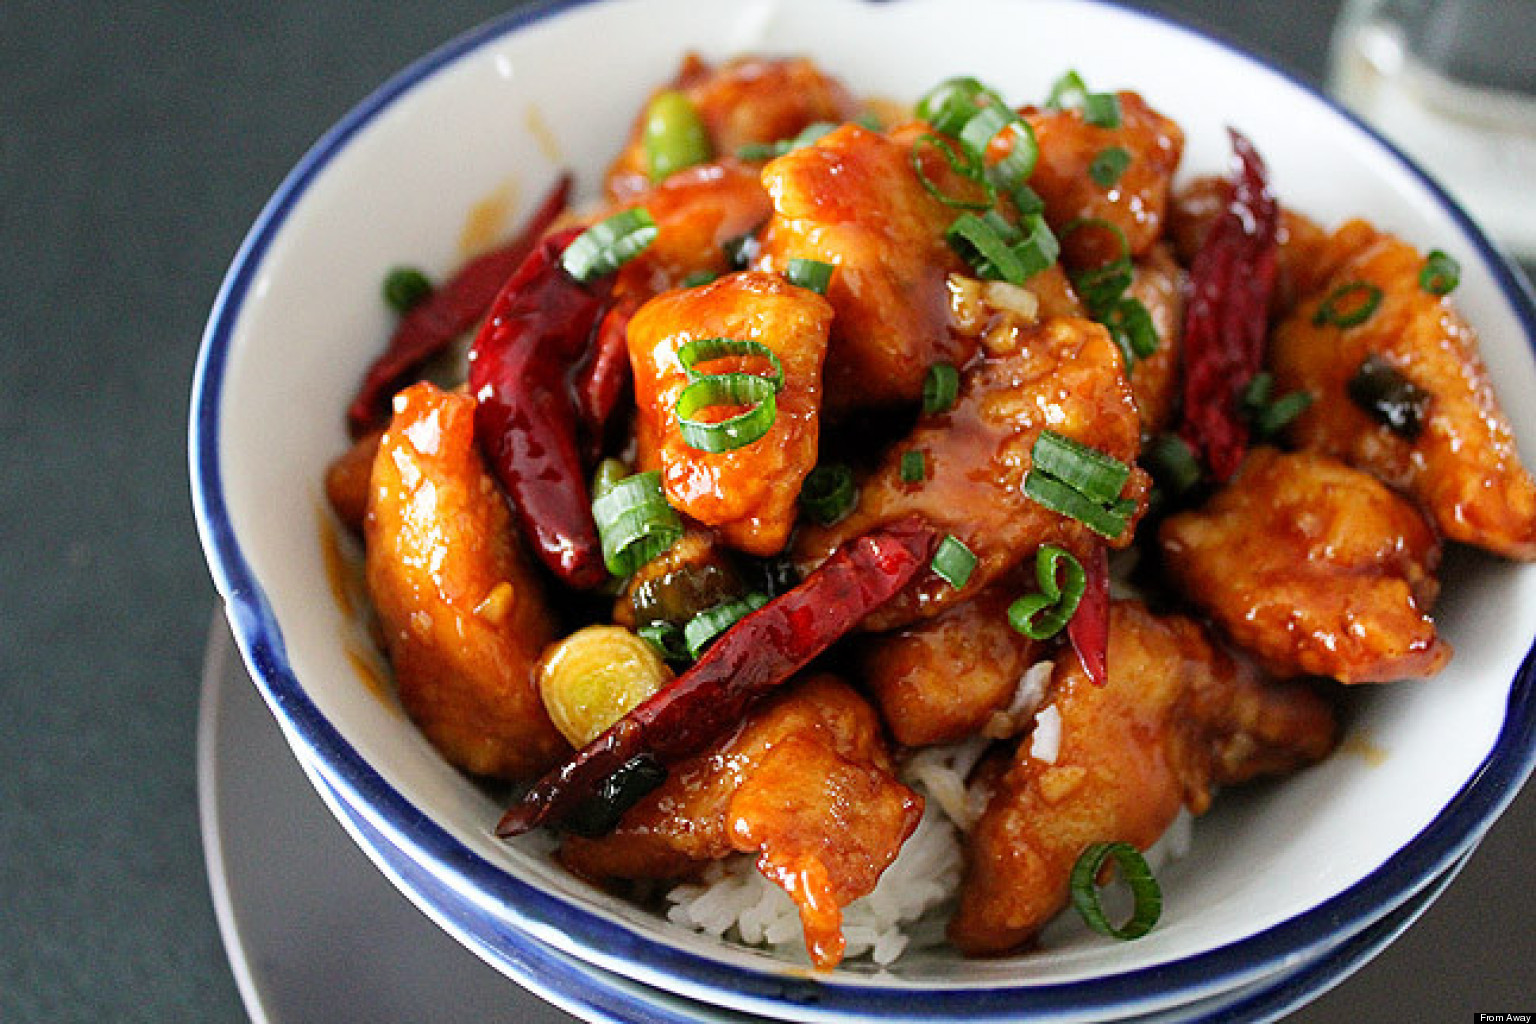 Chinese Foods Recipes With Pictures  Chinese Takeout Recipes To Make At Home PHOTOS